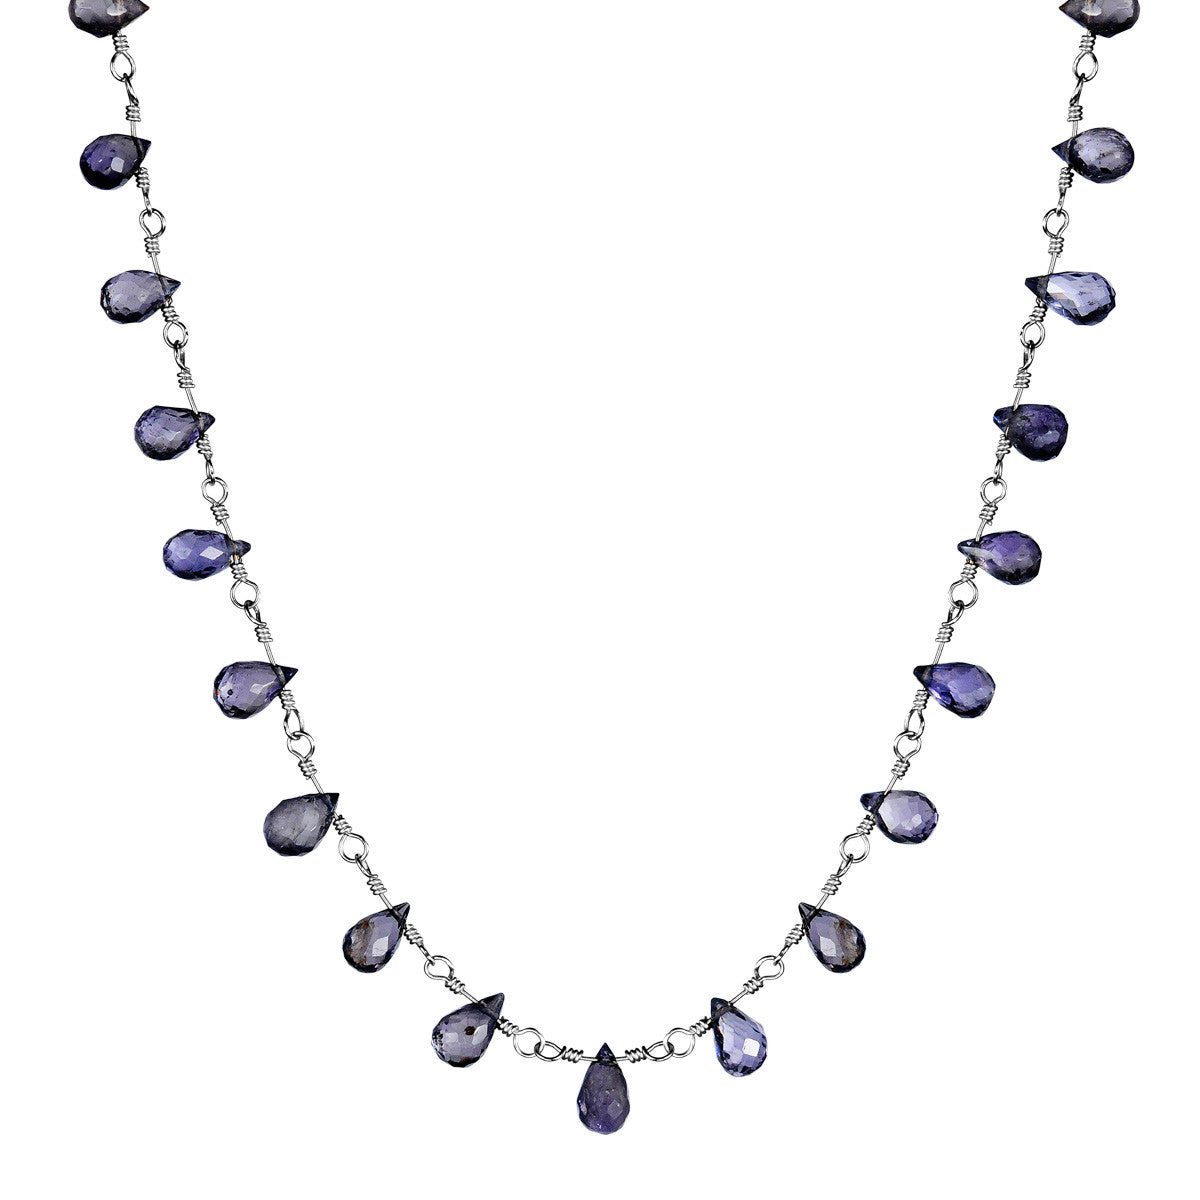 iolite necklace crystal vaults pendant